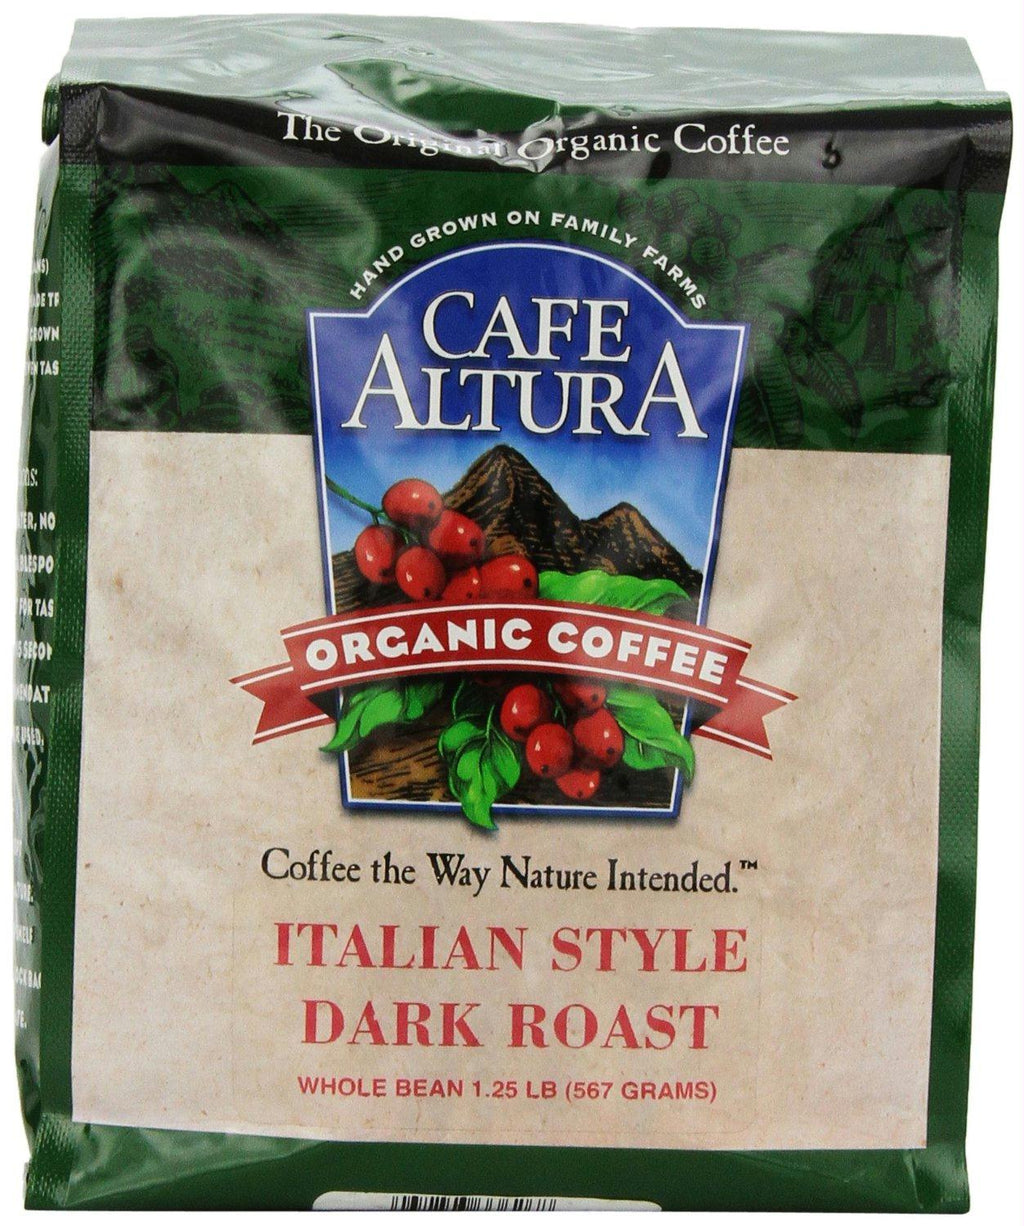 Cafe Altura: Organic Dark Roast Whole Bean Coffee Italian Style, 1.25 Lb